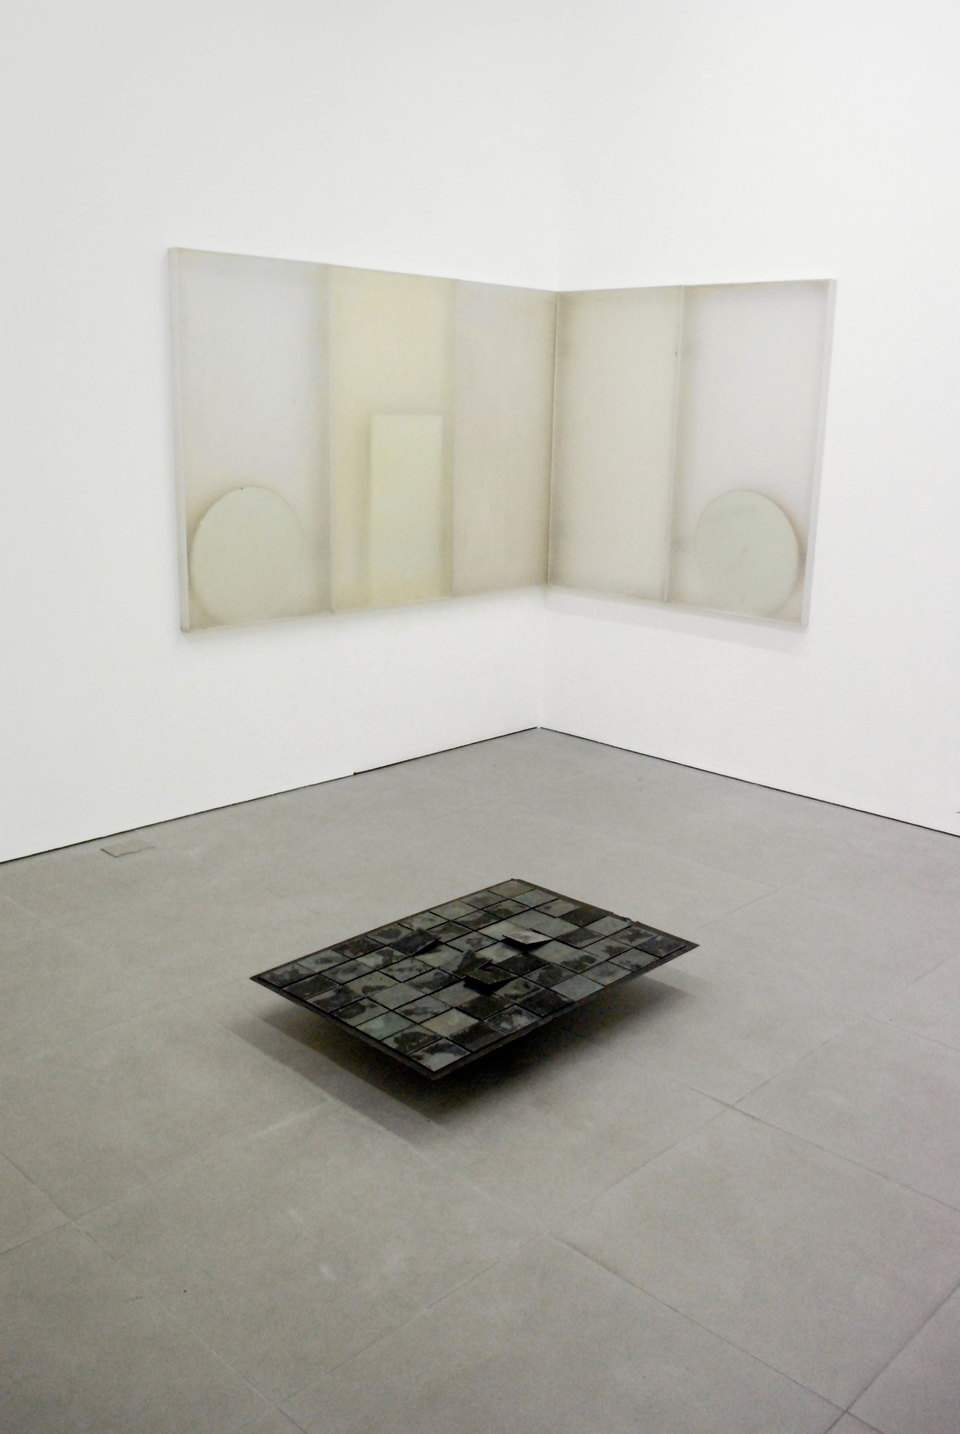 Adam Thompson, 'Untitled (Components & Variables)', 2010, Light deflector panels, mirrors, photographic plates, rubber sheet, Cell Project Space